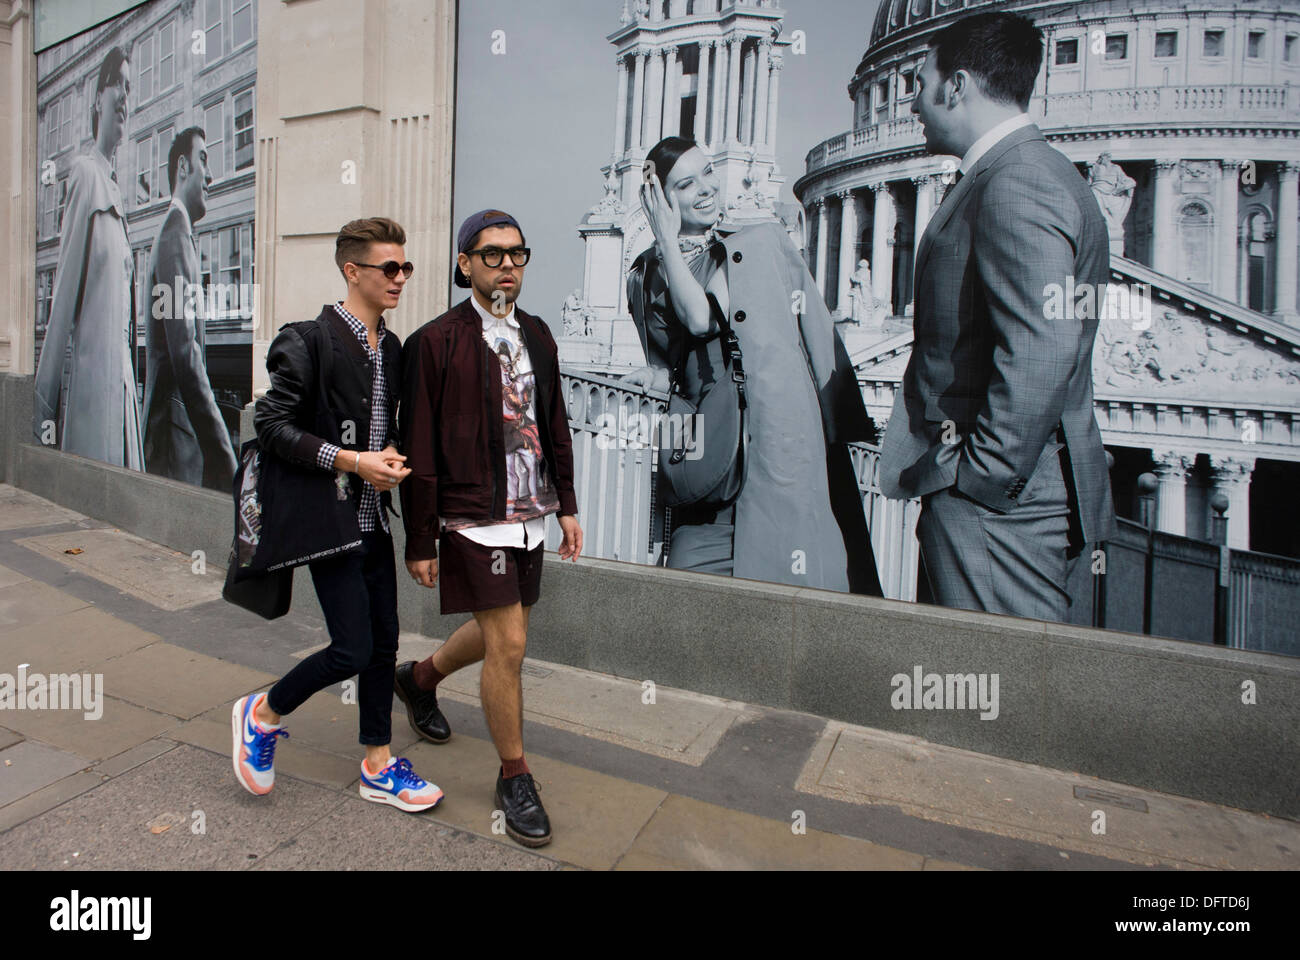 Two men walk past a fashion poster showing a fashion boy and girl and St Paul's Cathedral. - Stock Image